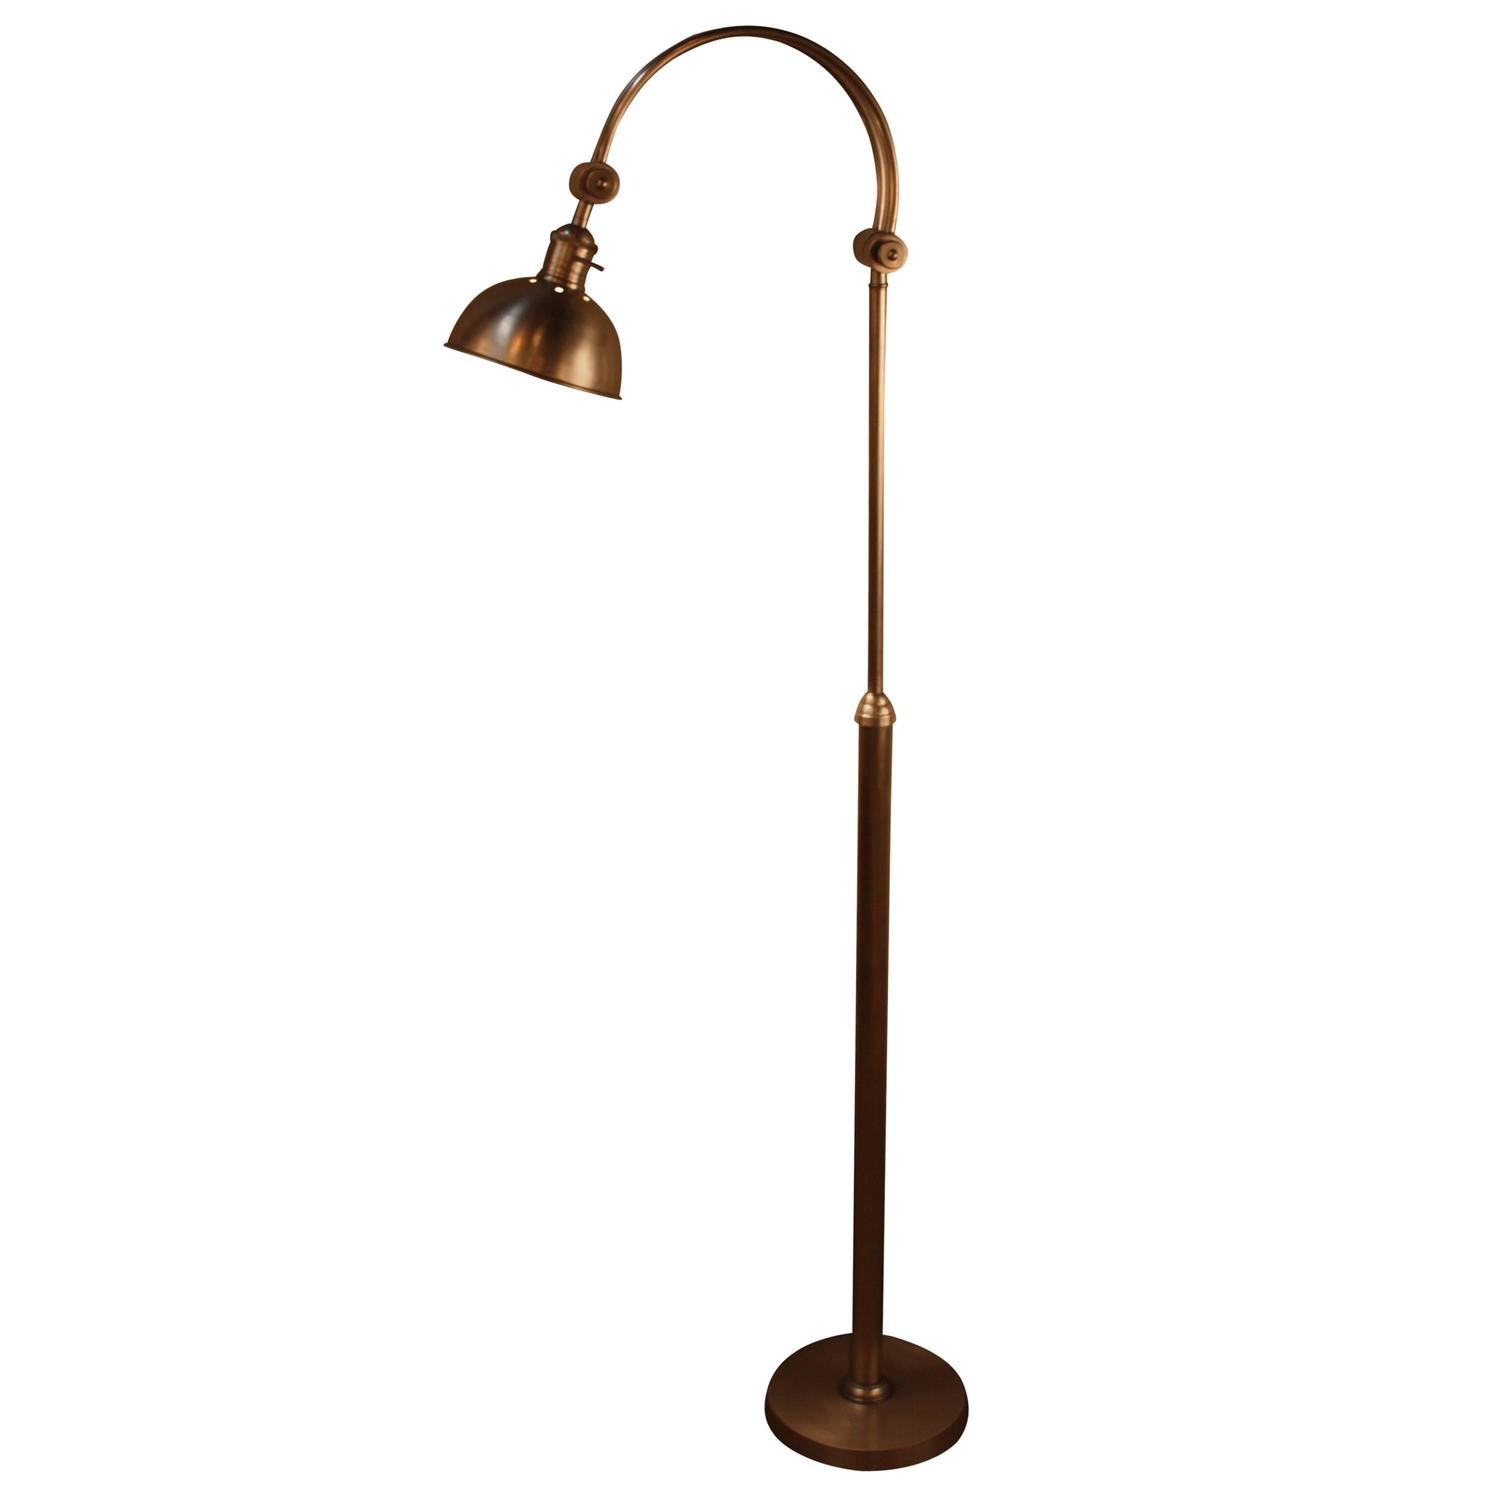 spanish adjustable arm satin nickel floor lamp at 1stdibs. Black Bedroom Furniture Sets. Home Design Ideas